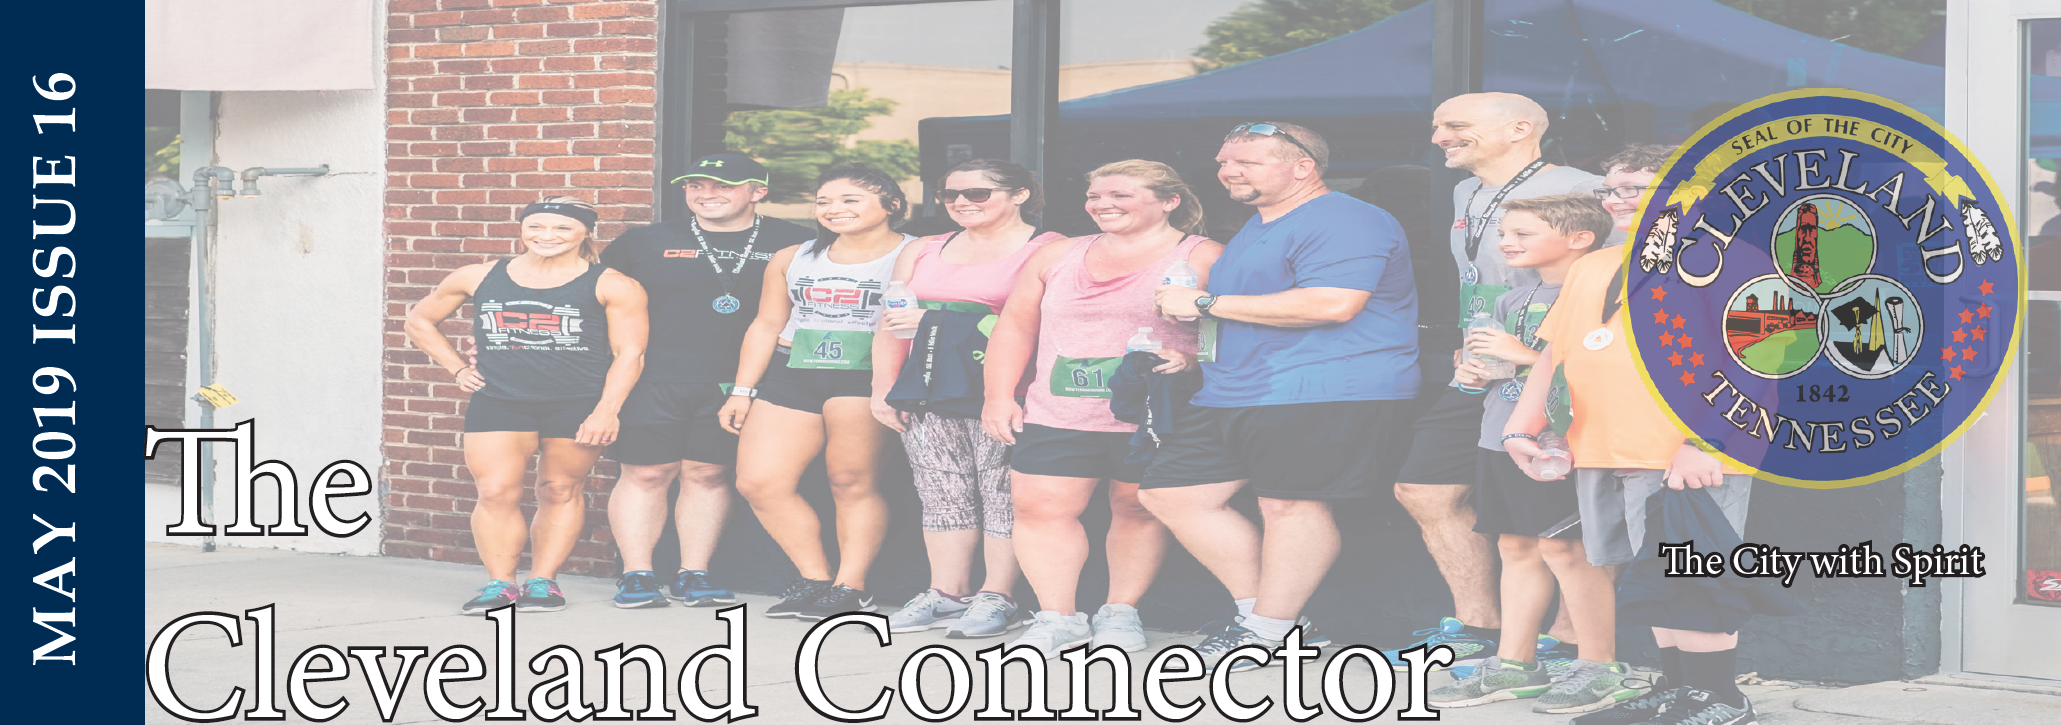 May 2019 Issue 16 - The Cleveland Connector Opens in new window